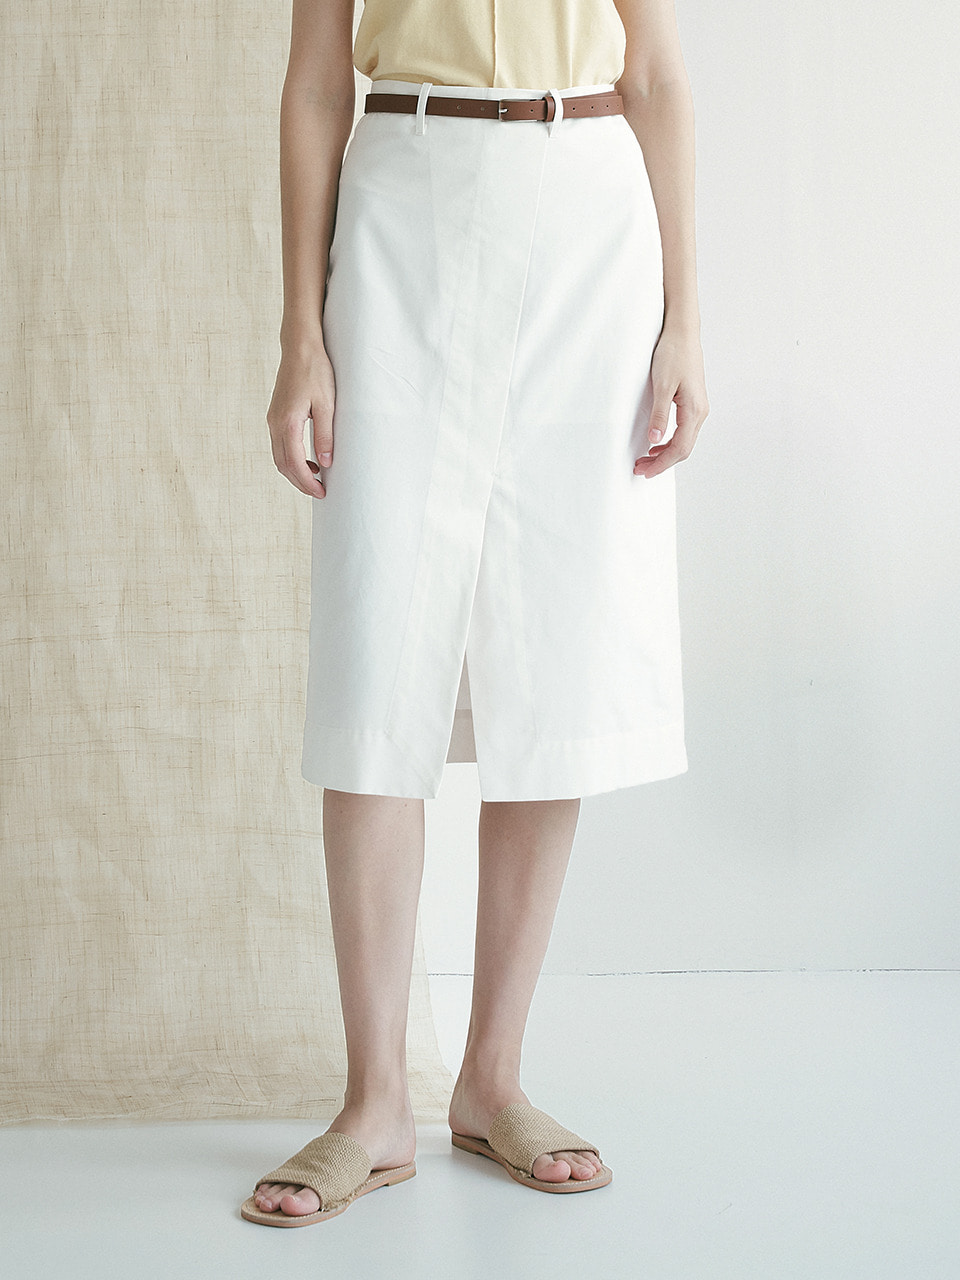 comos'371 slit stitch skirt (ivory)